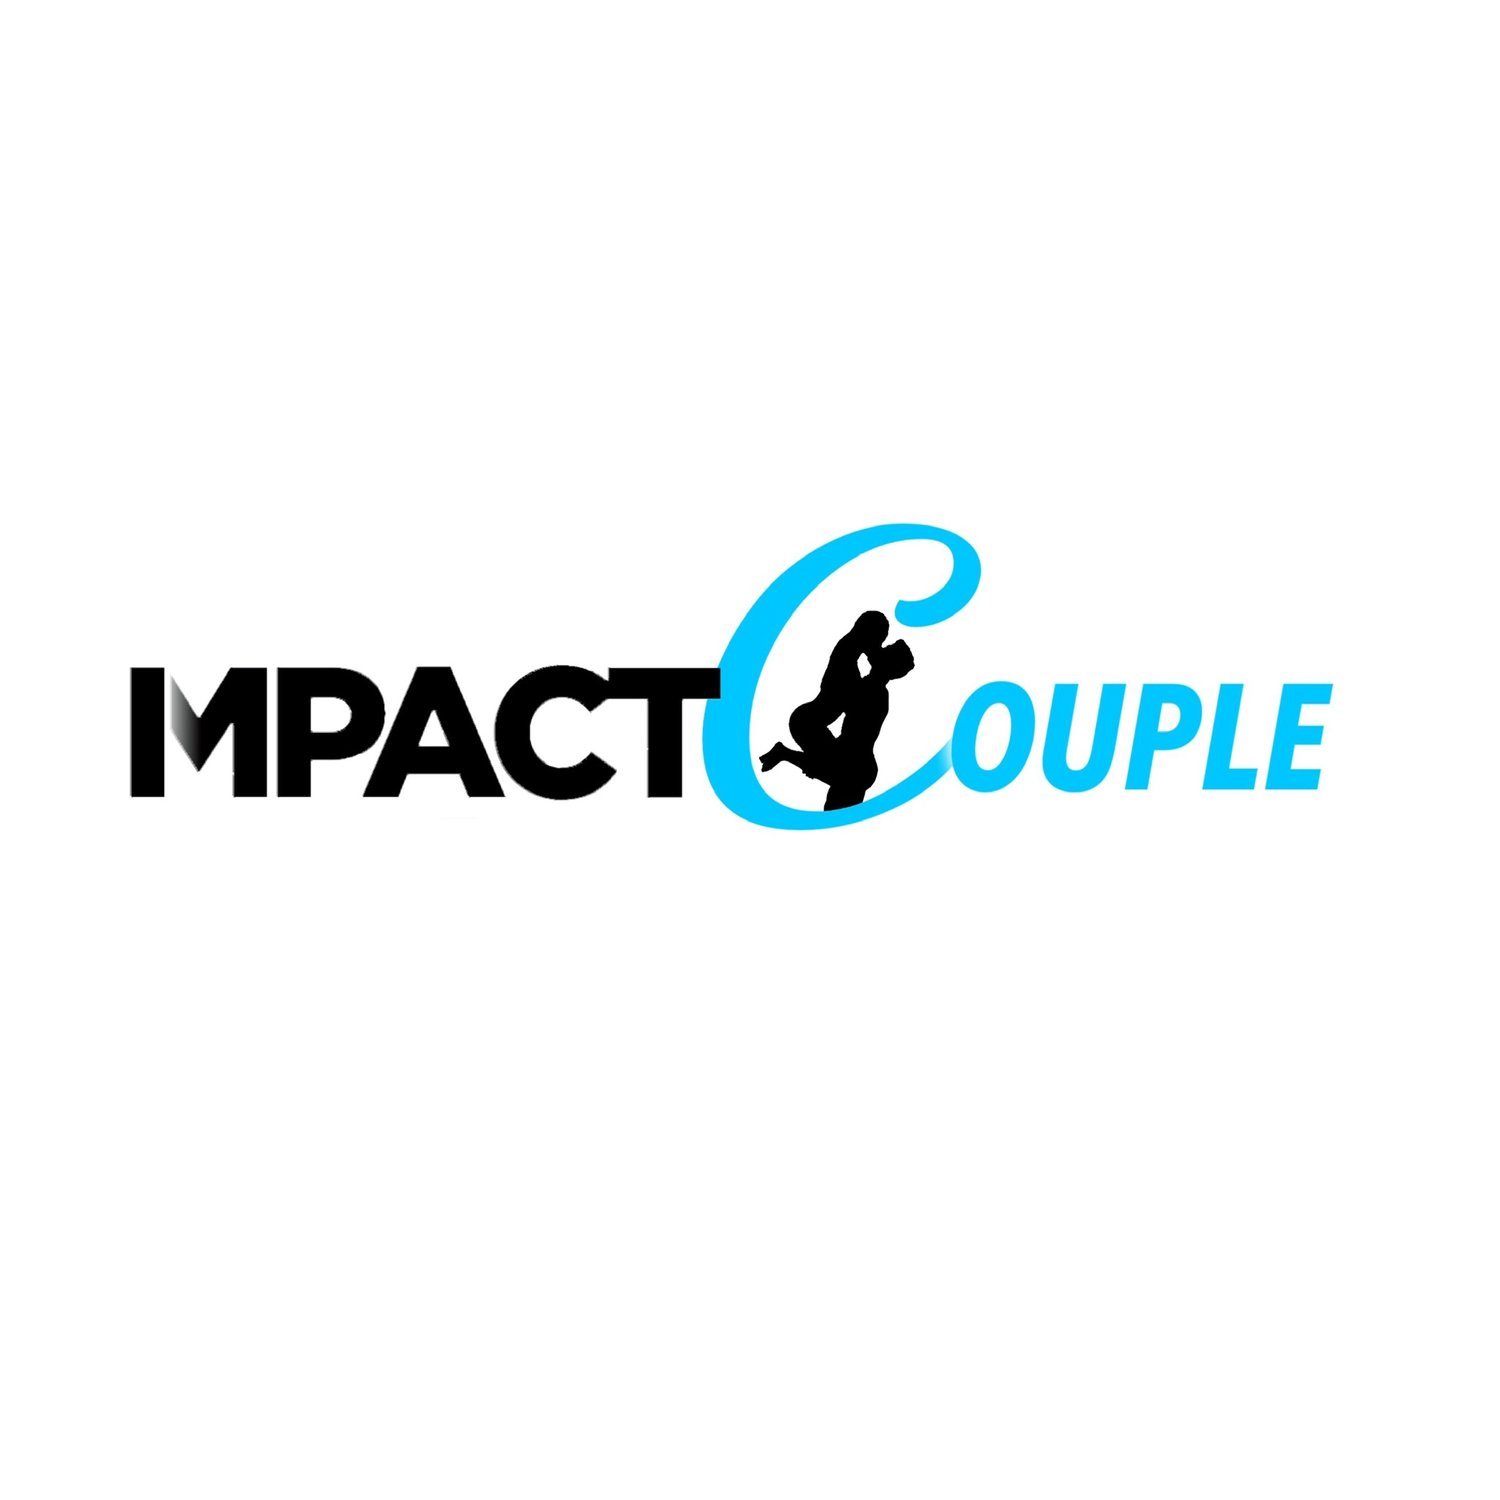 Impactcouple inc